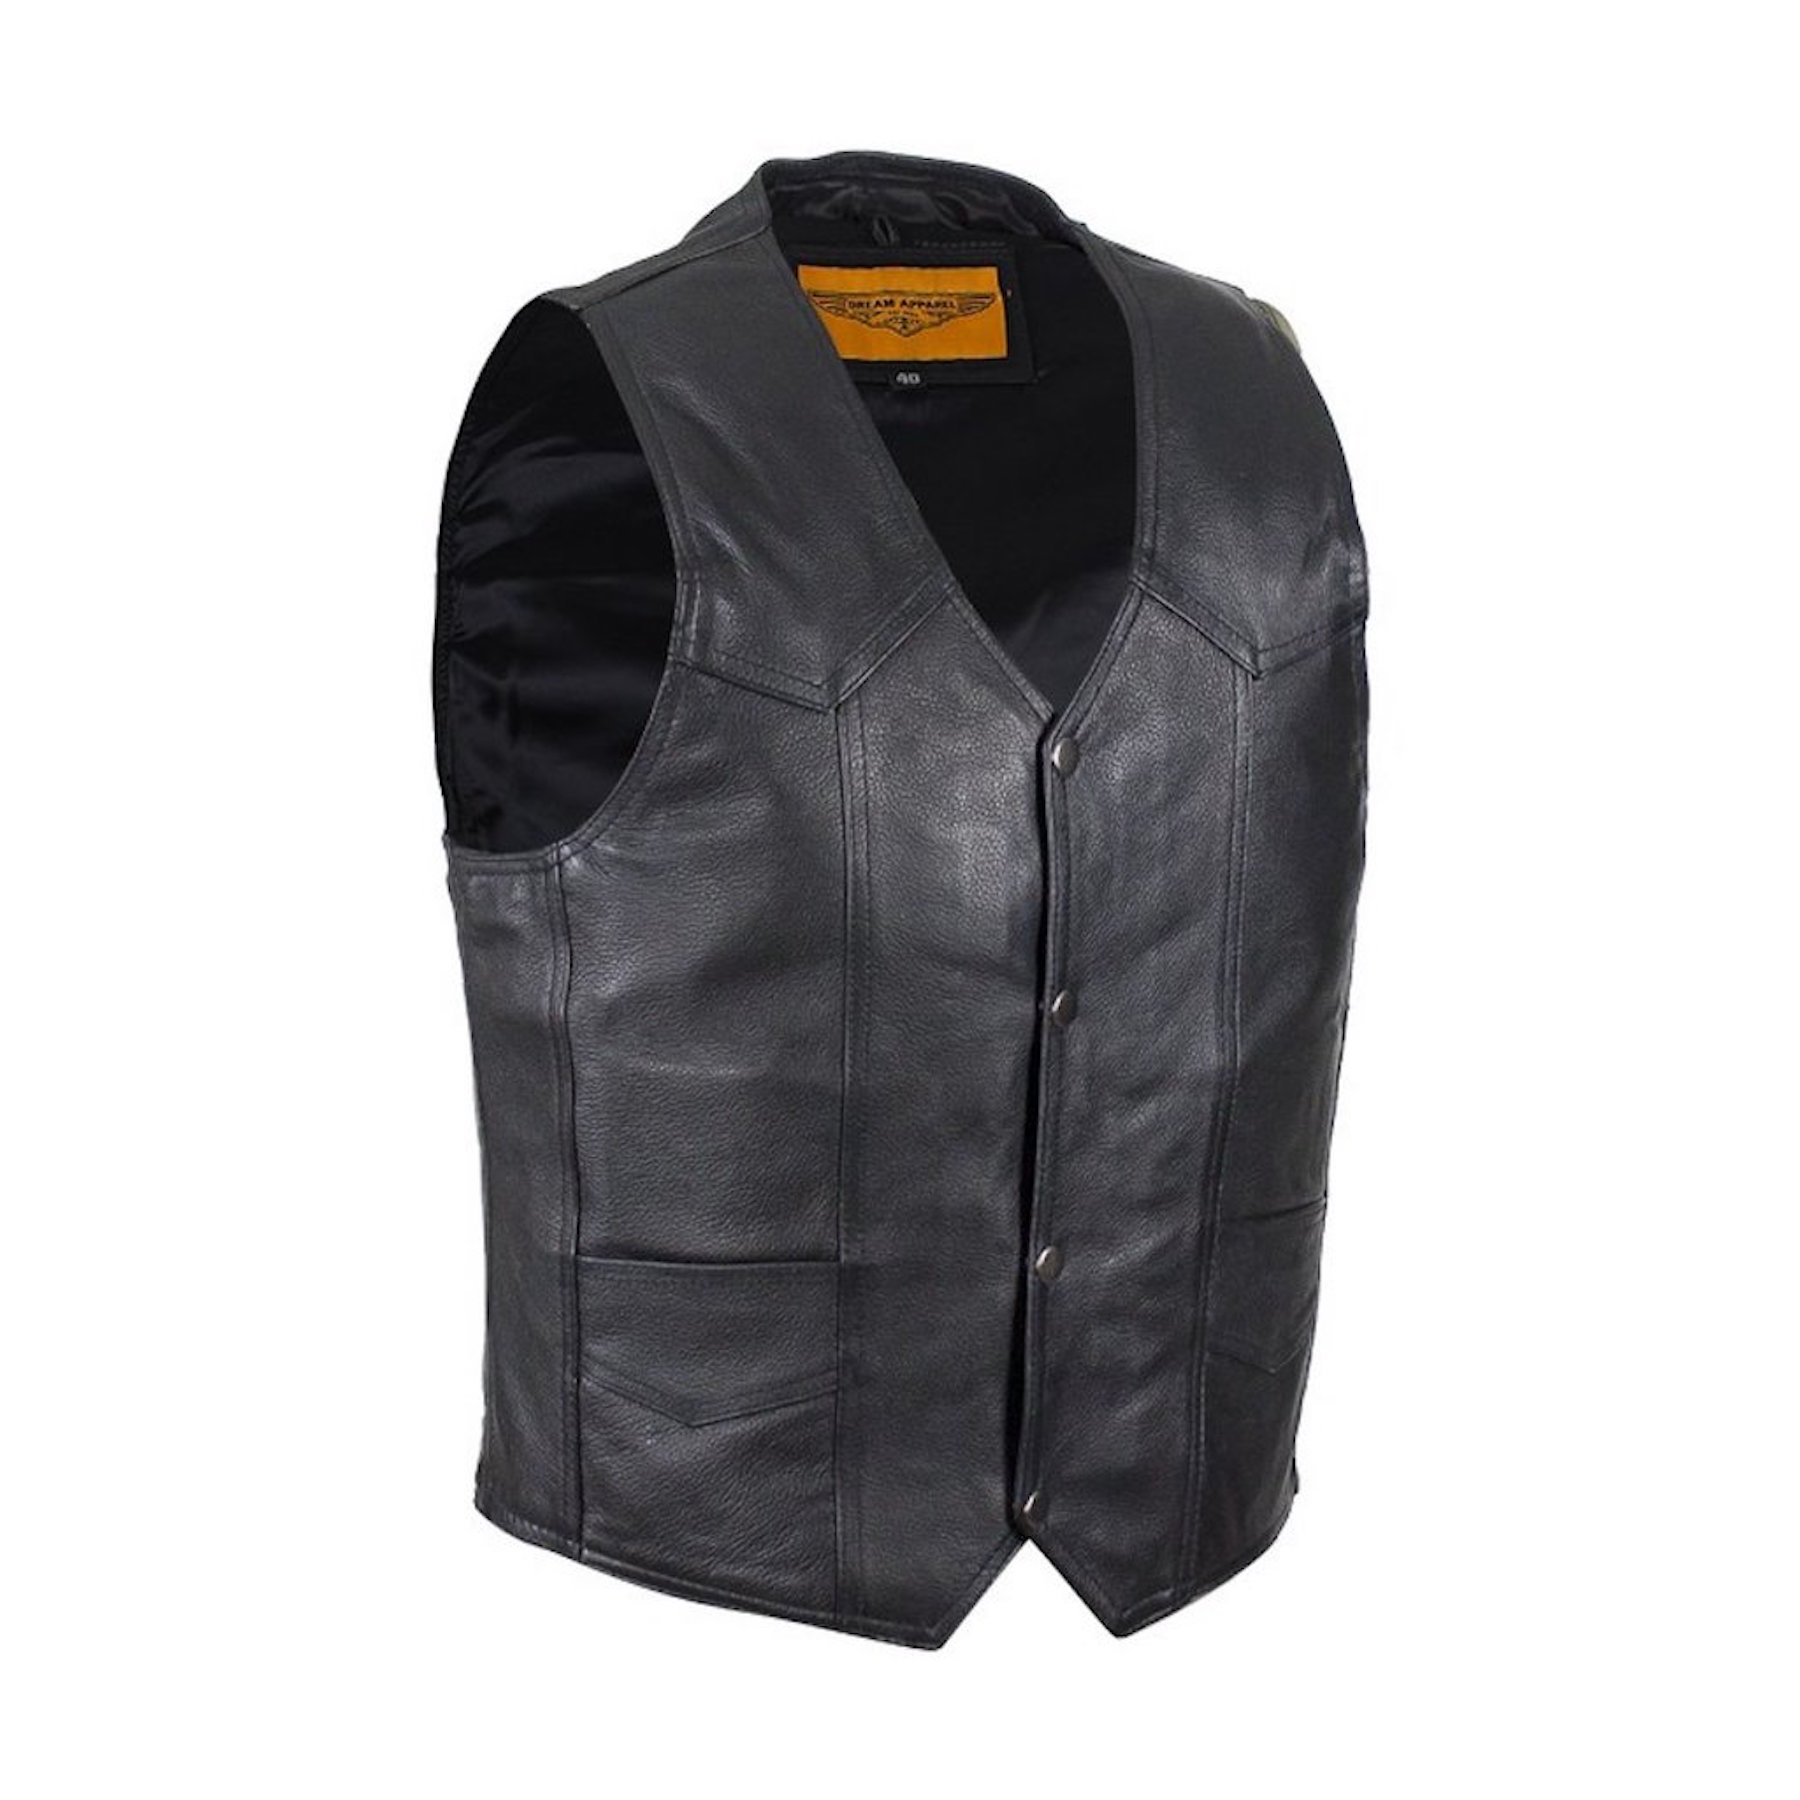 Mens Plain Black Leather Motorcycle Vest with Gun Pocket Solid Back (42) by Ultimate Leather Apparel